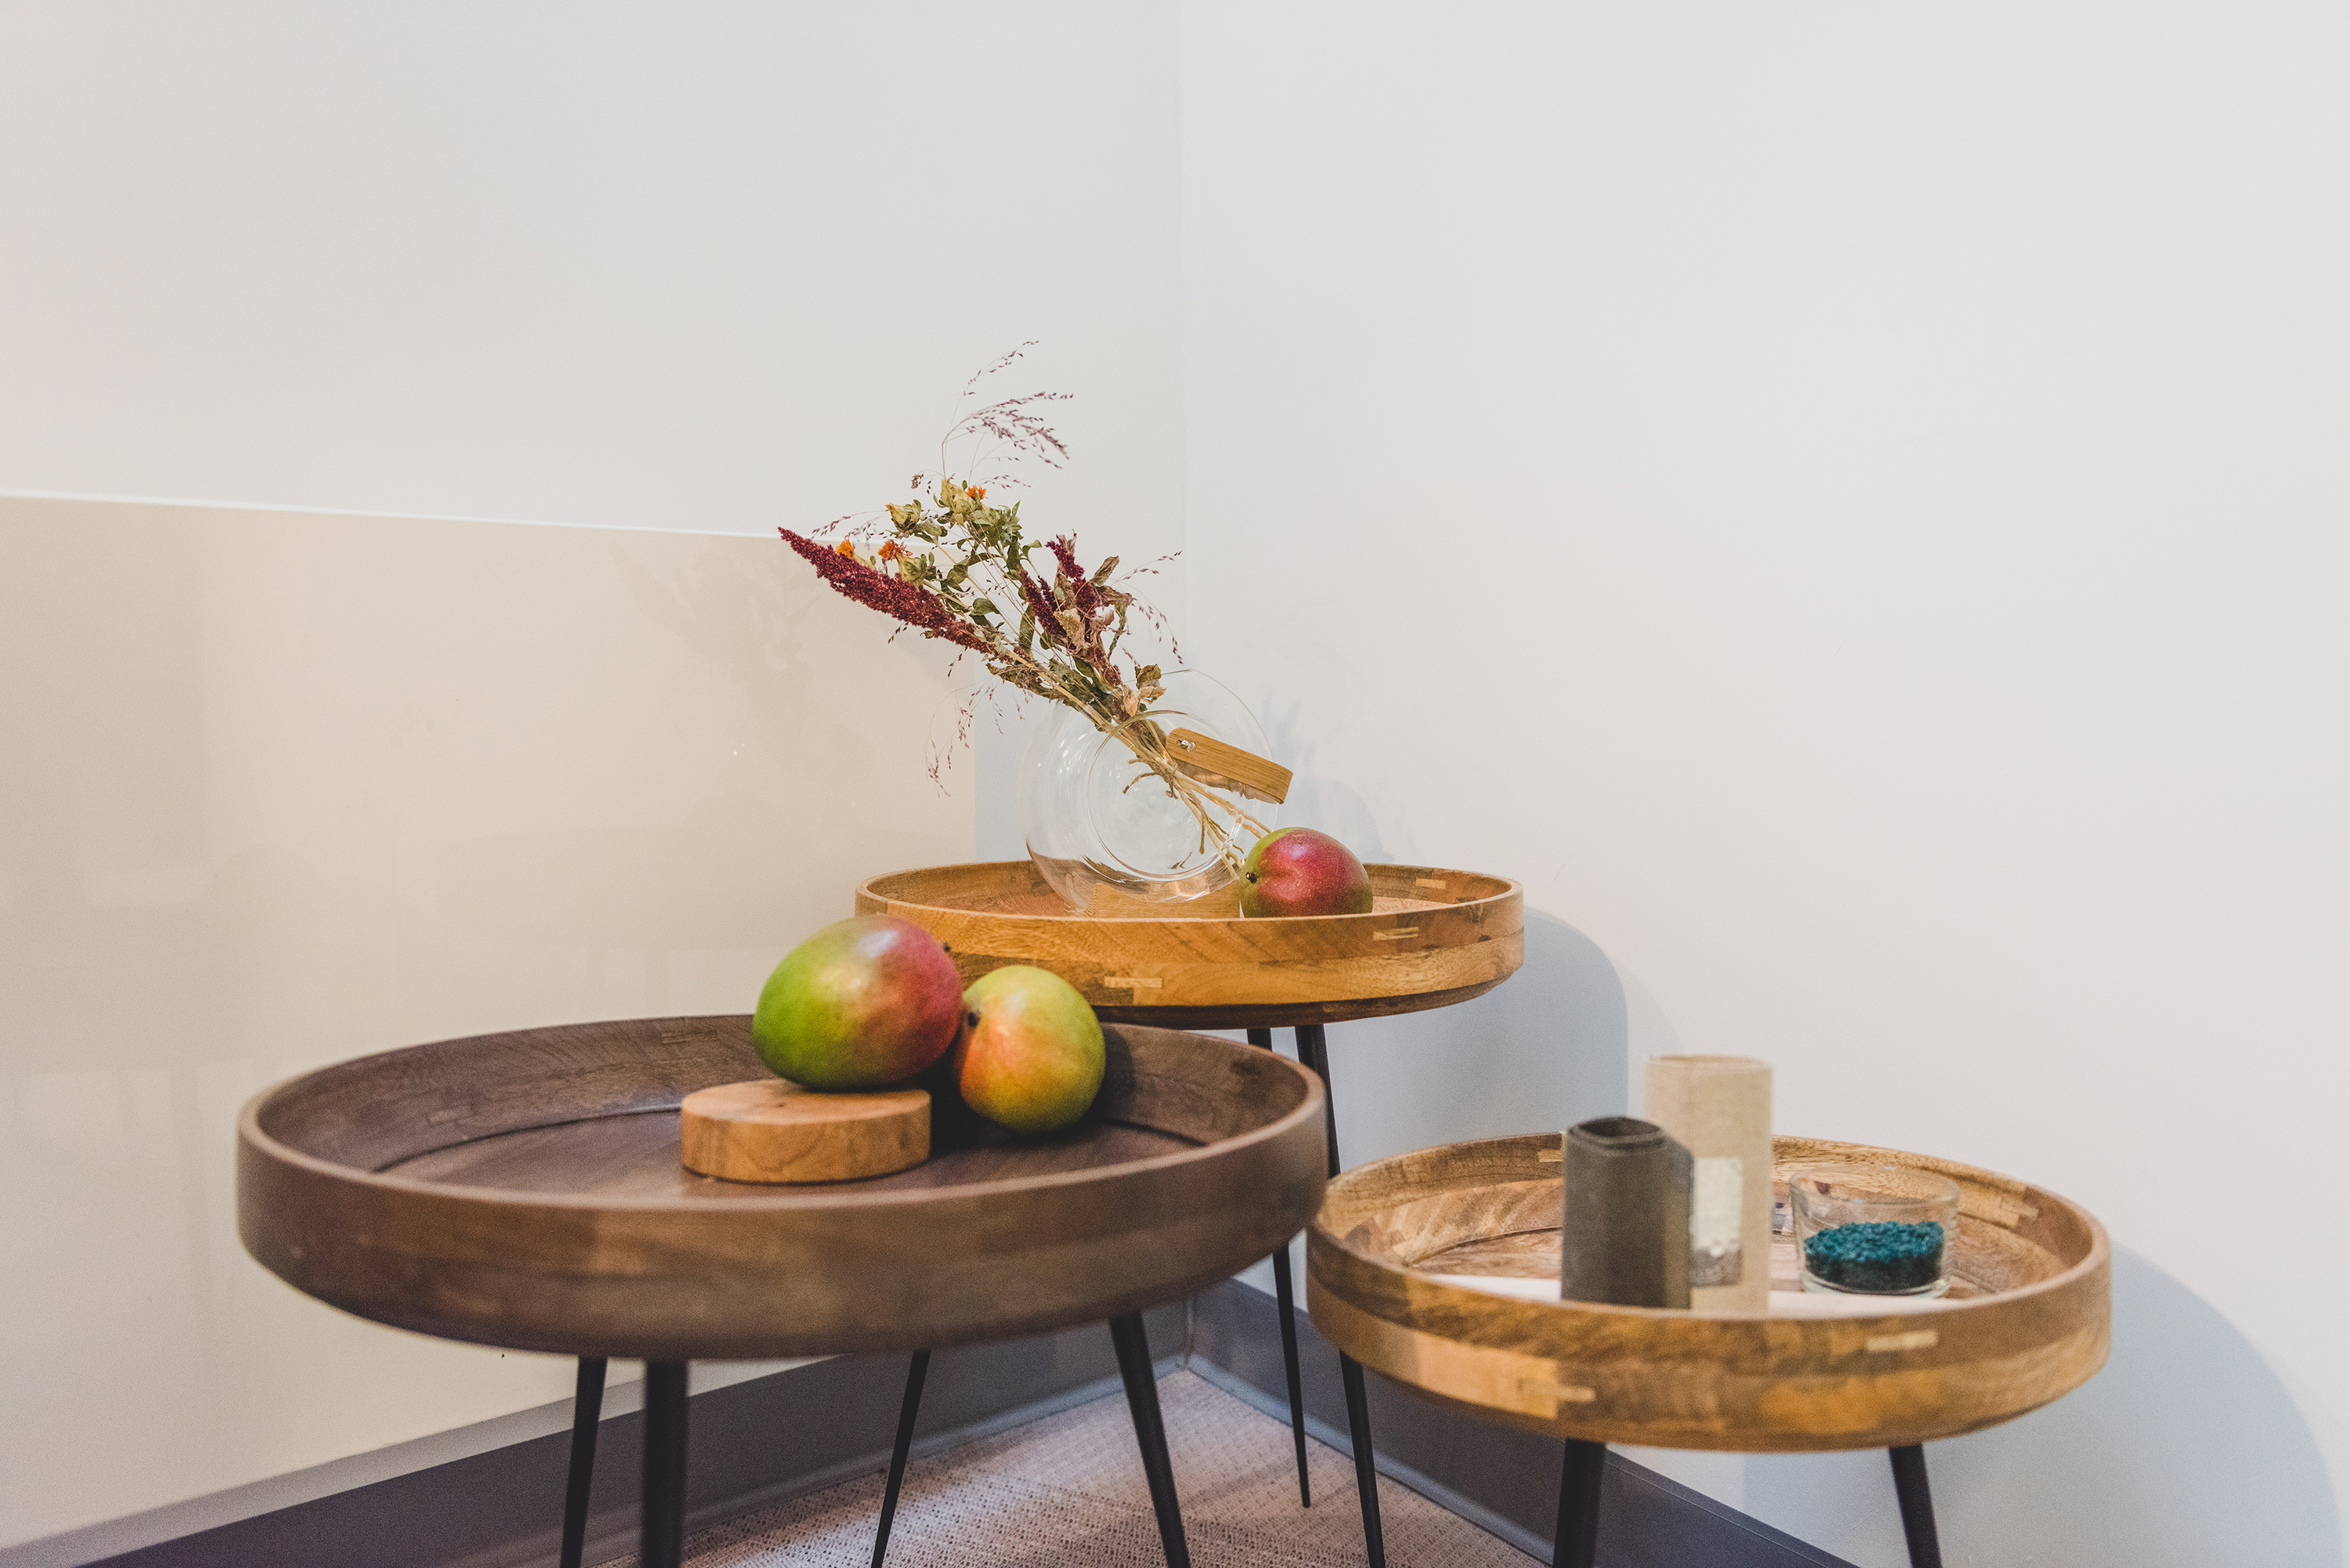 Mater tables made from mango wood